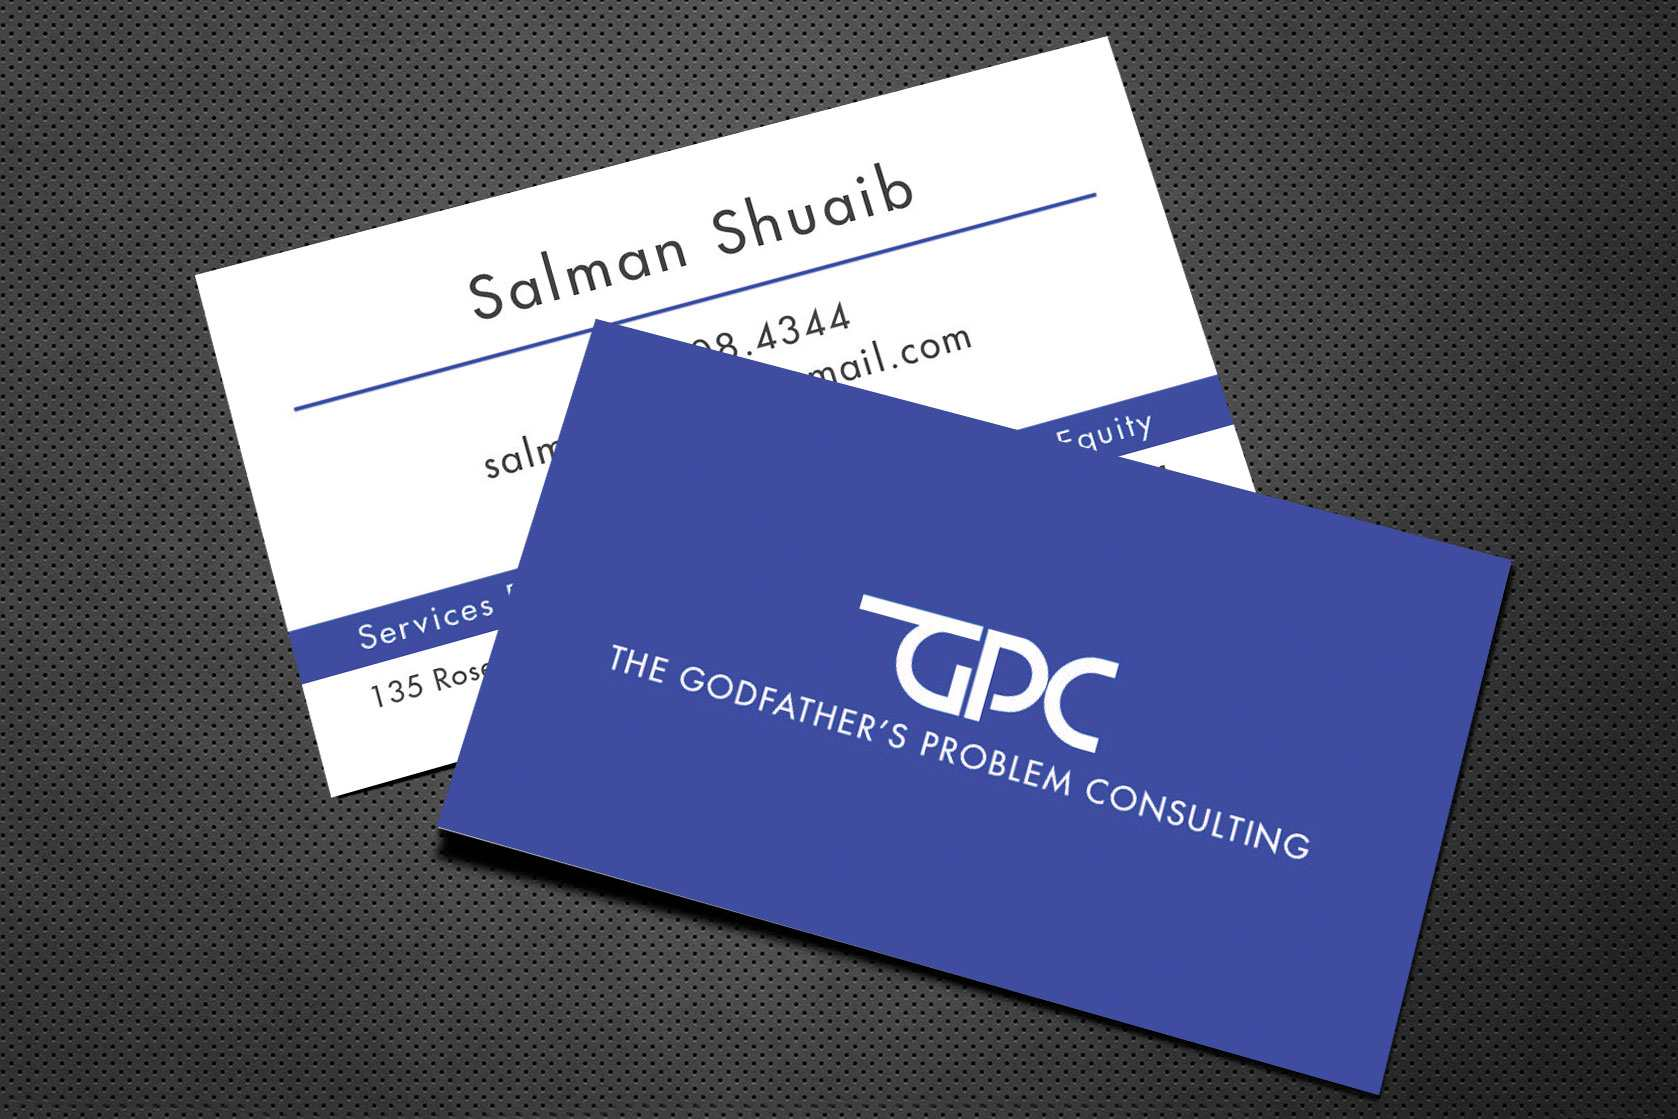 The Godfathers Problem Consulting BusinessCard Design – Lines & Beyond